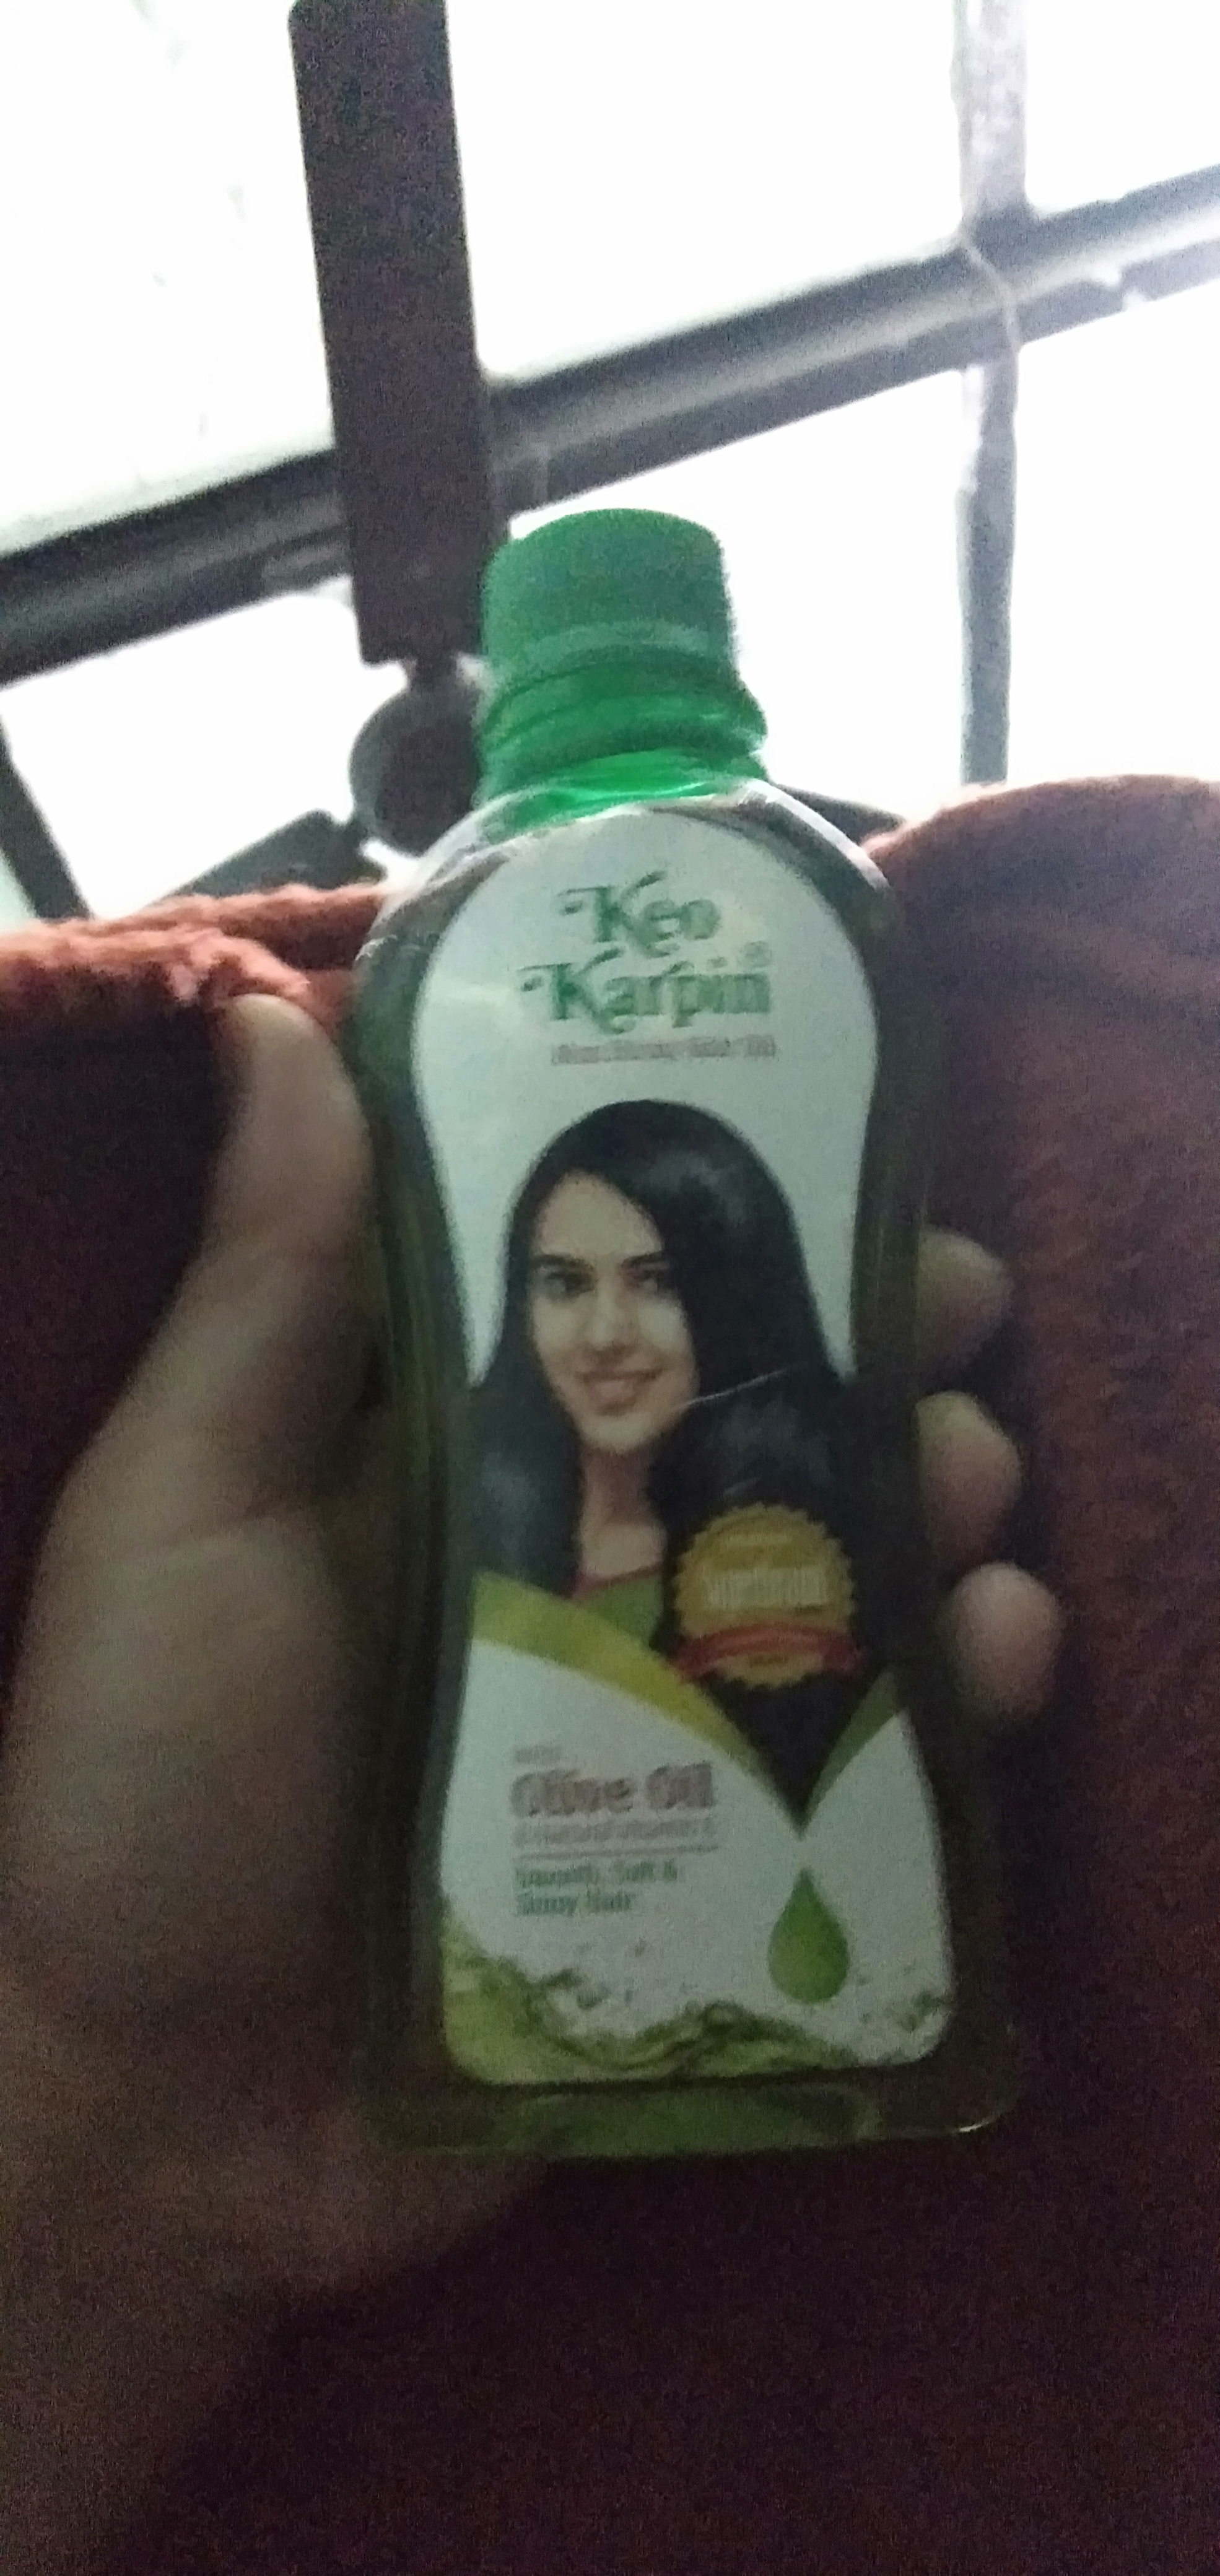 Keo Karpin Non-Sticky Hair Oil-Non sticky hair oil-By sonithapa